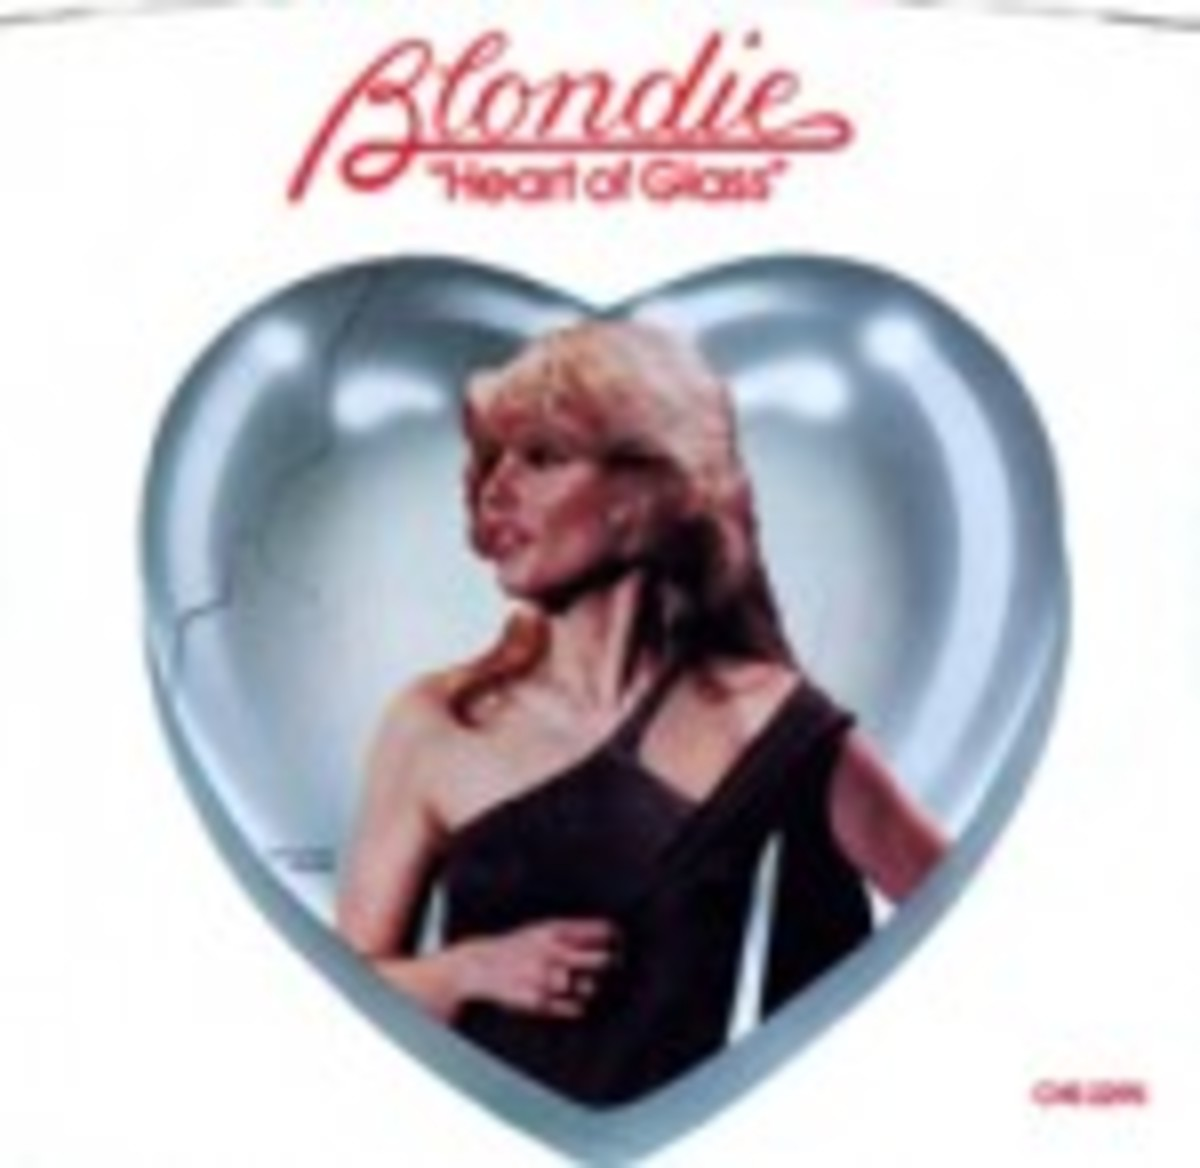 Blondie Heart of Glass